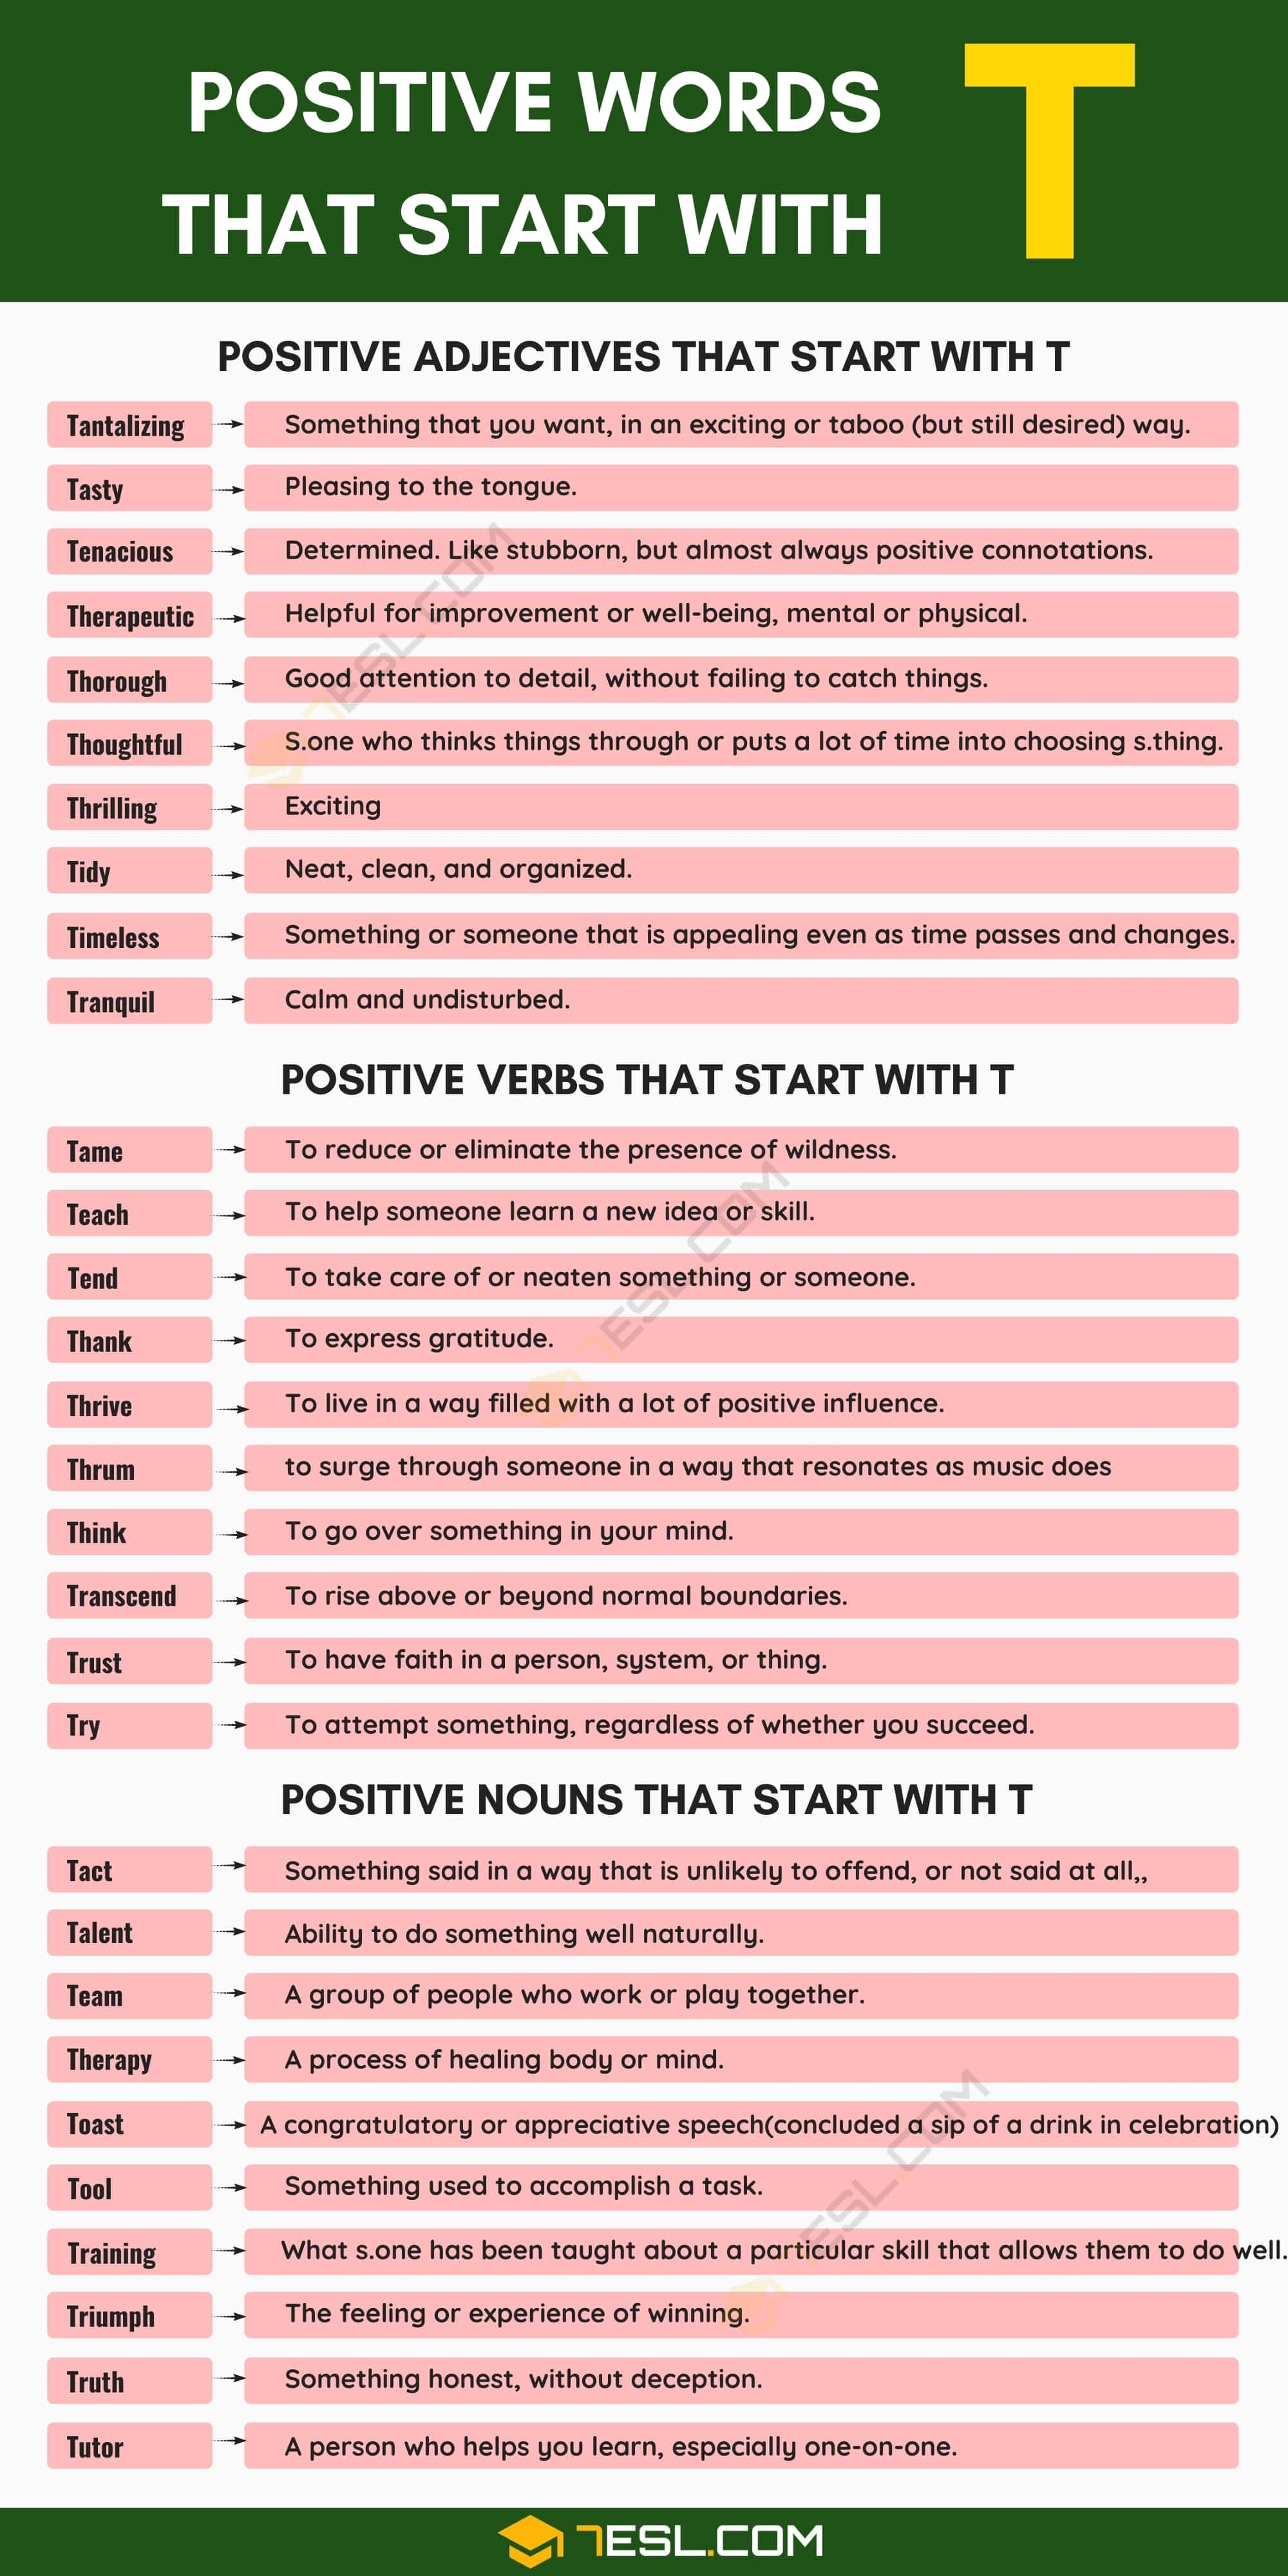 Positive Words that Start with T (Adjectives, Verbs, Nouns)